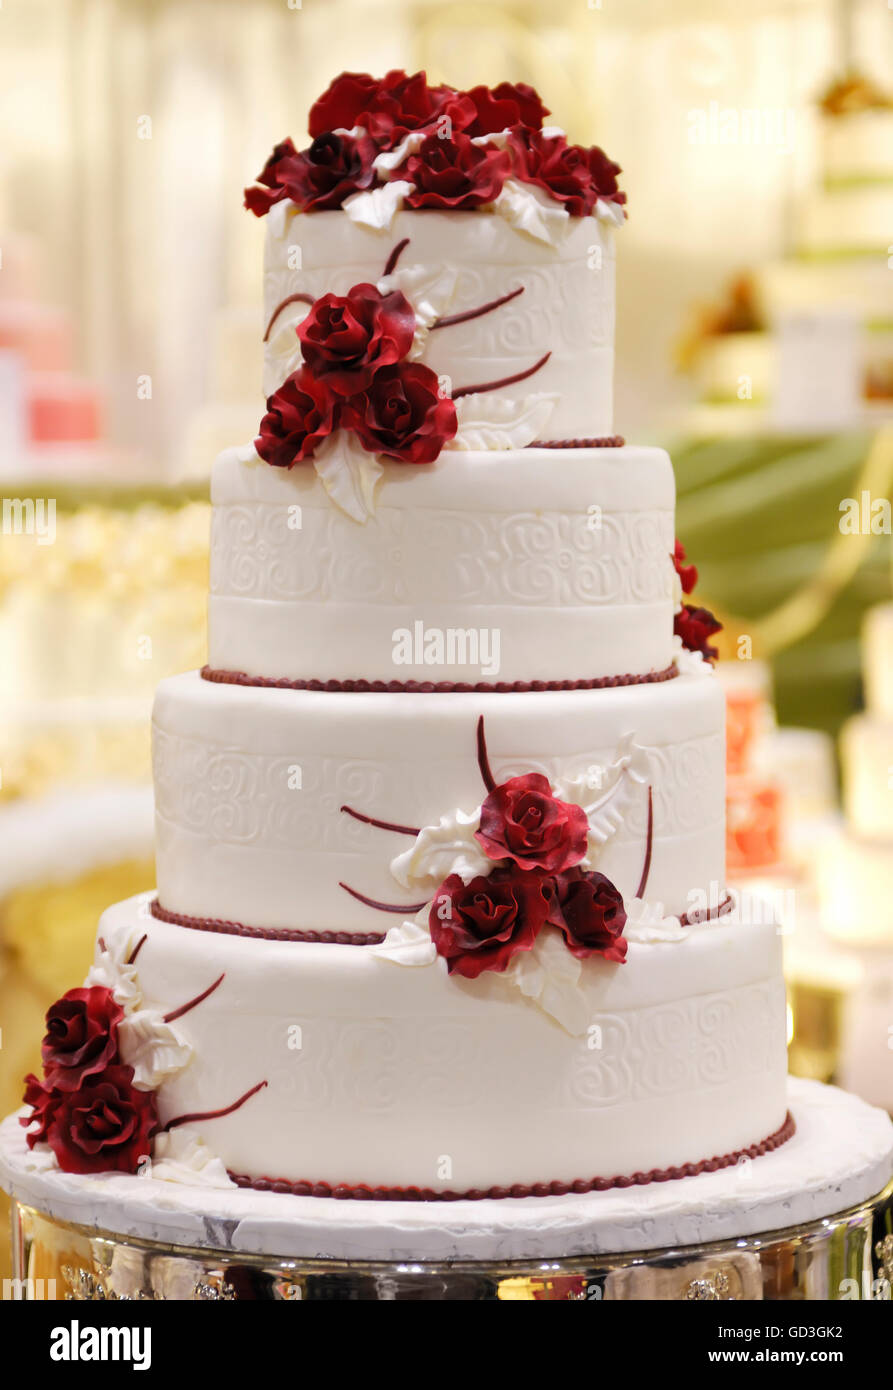 Tiered wedding cake decorated with red roses - Stock Image